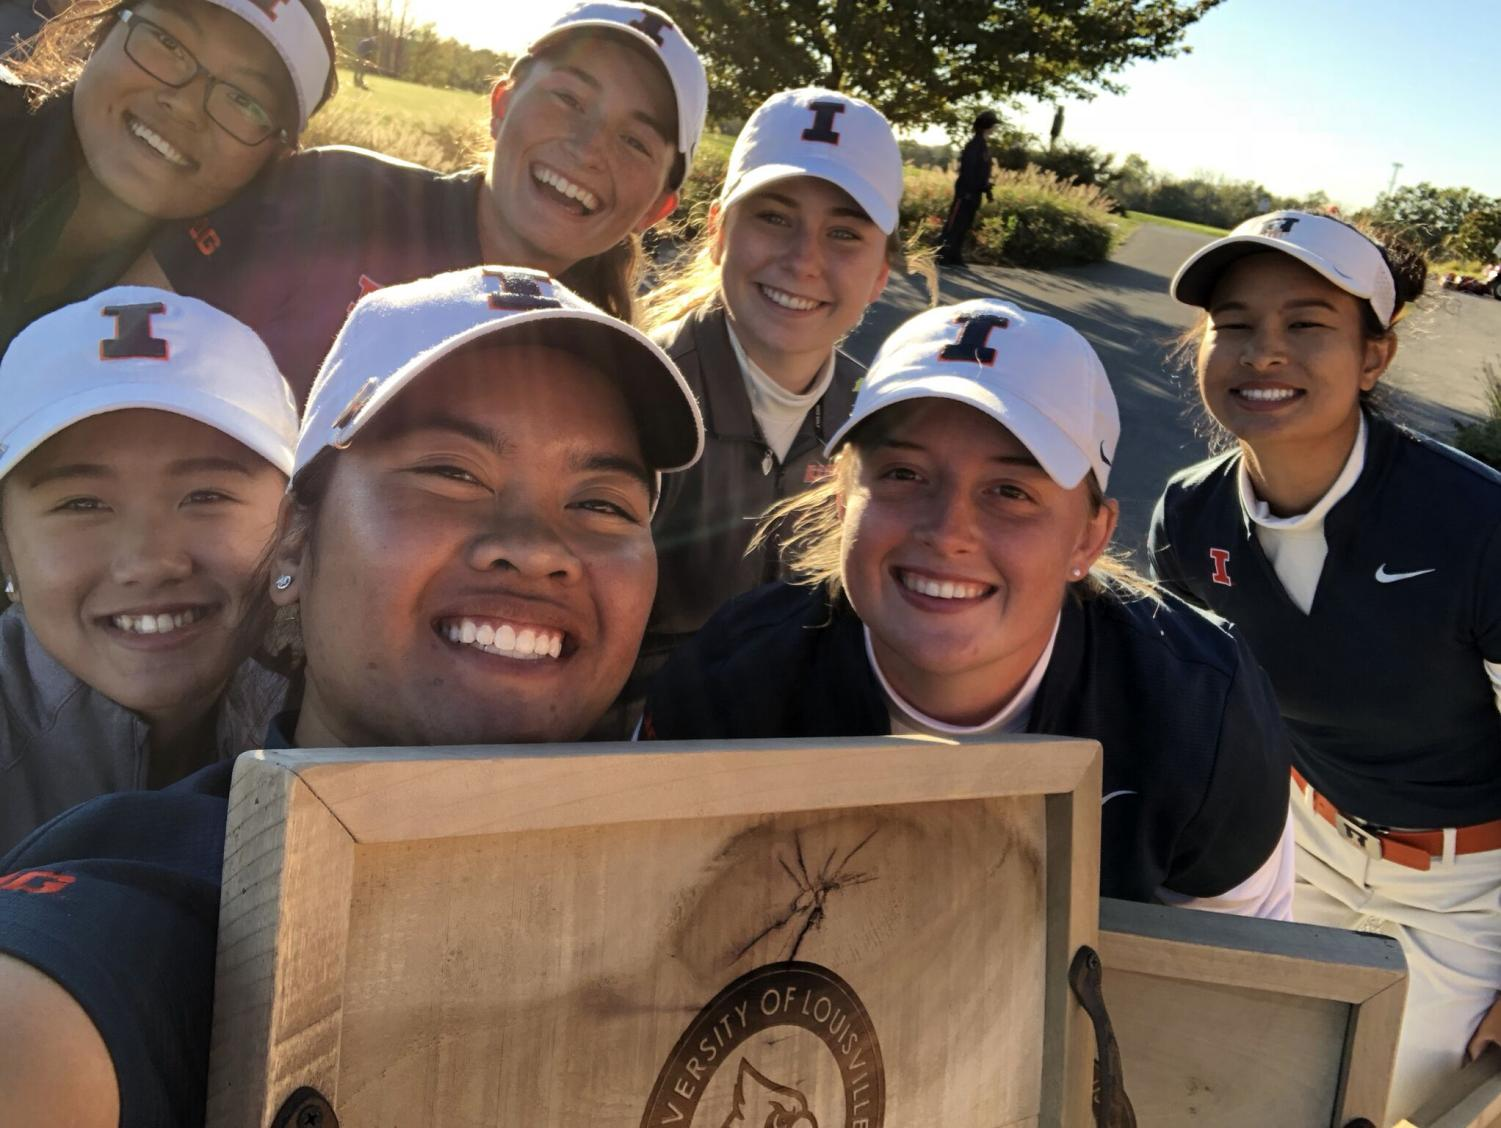 The Illini women's golf team poses for a picture after taking home a first-place victory at the Cardinal Cup in Louisville, Kentucky. on Oct. 21.